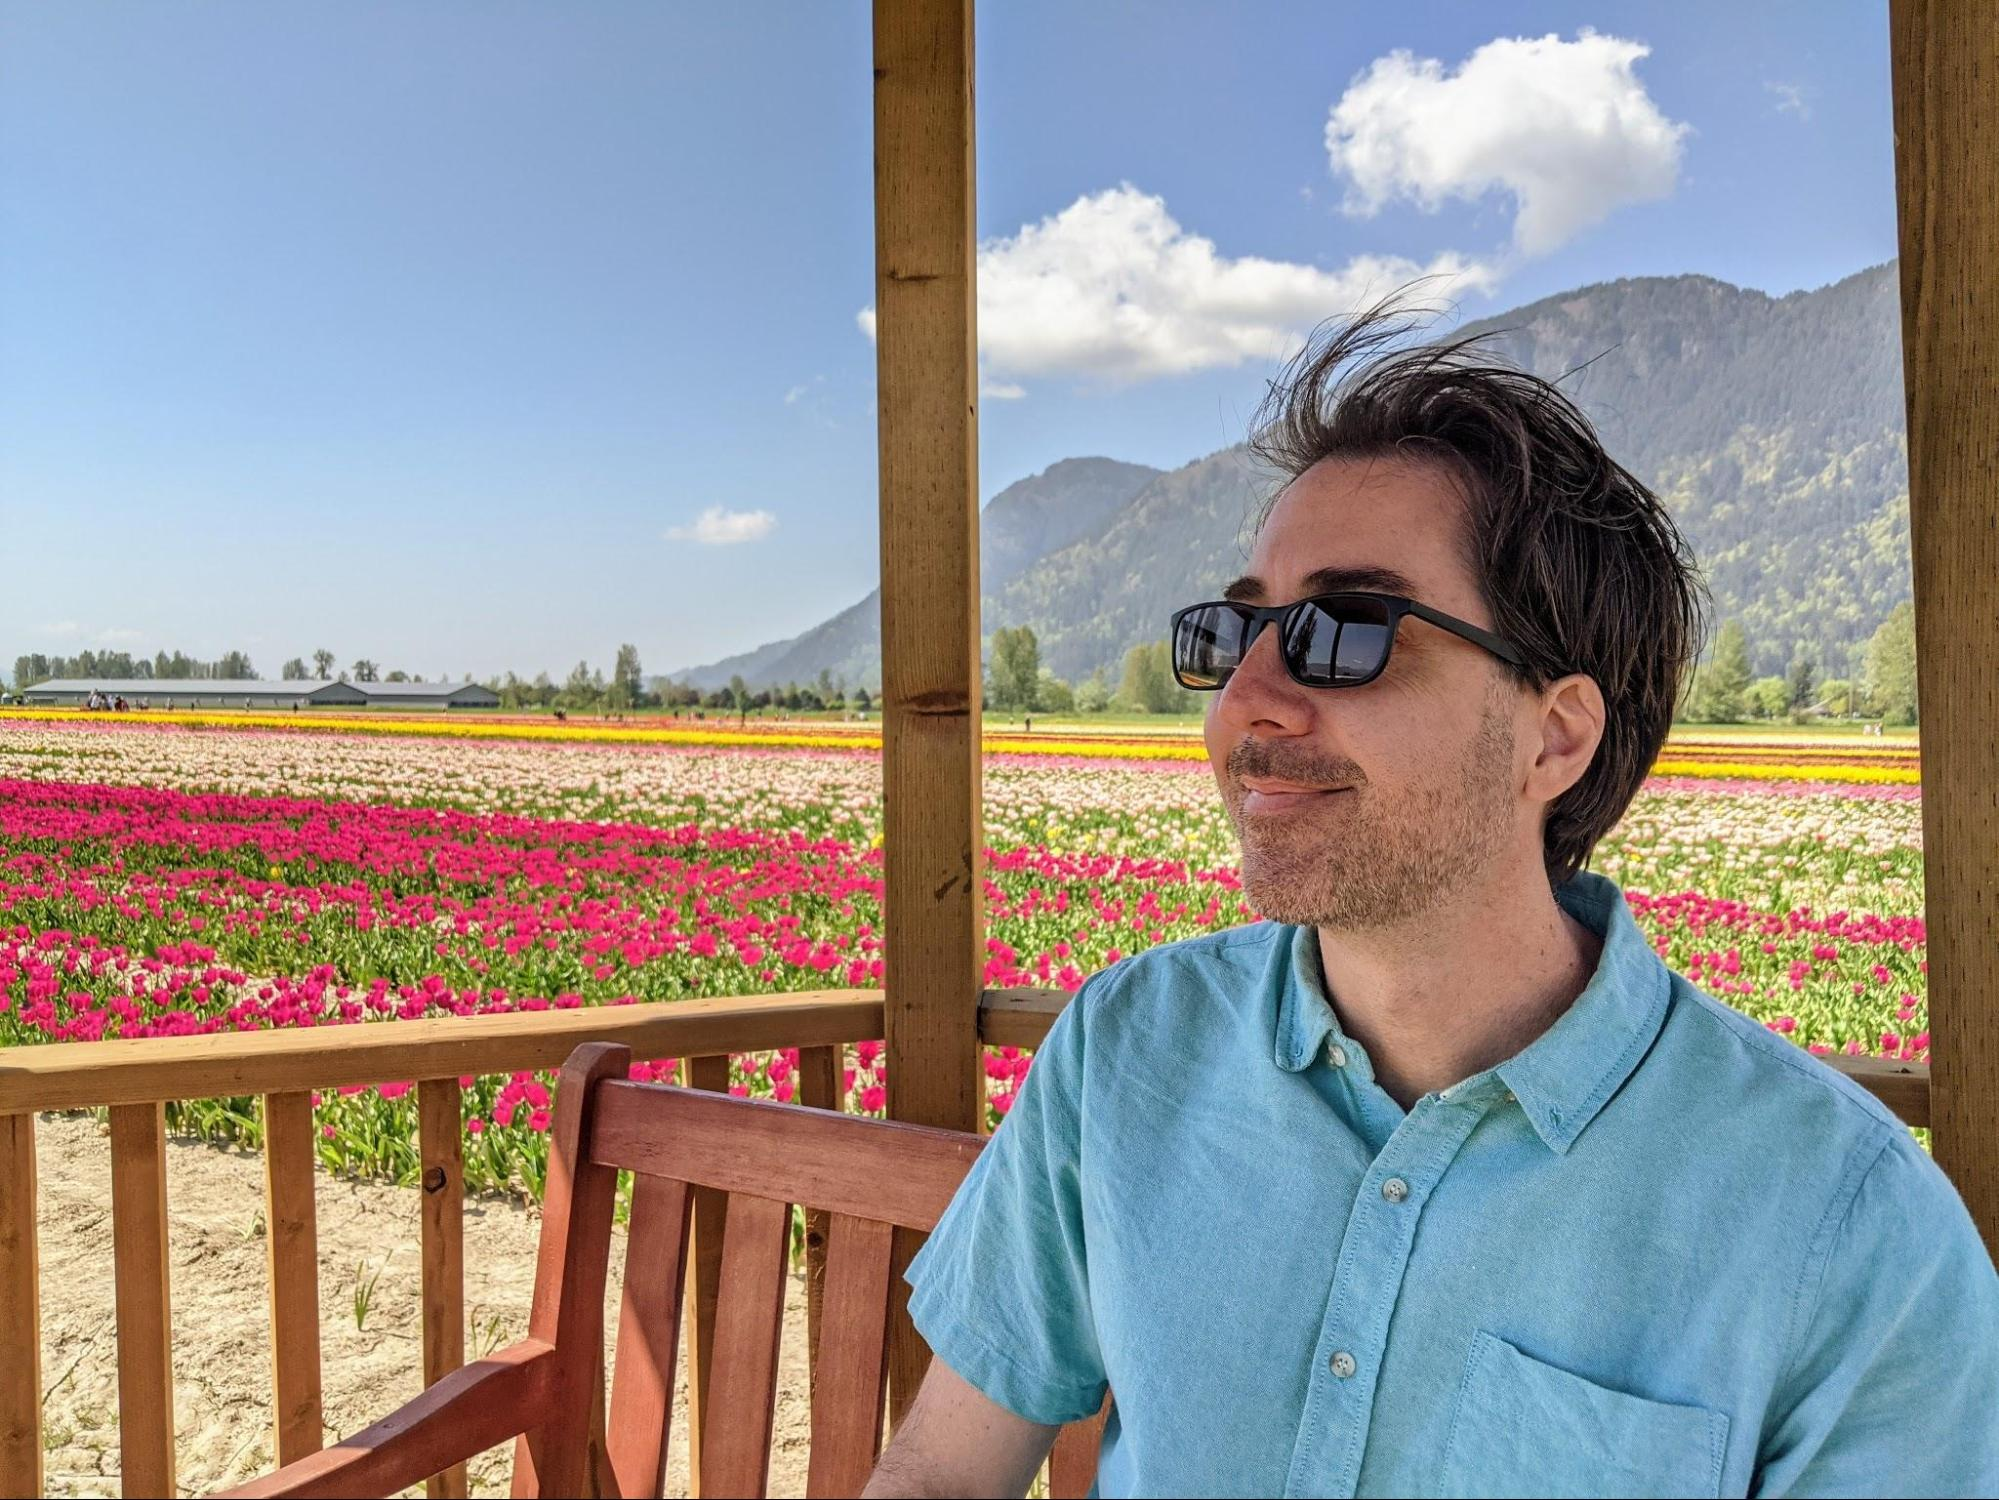 Jay sitting in a gazebo in front of the multi-colored field of tulips at the Chilliwack tulip festival